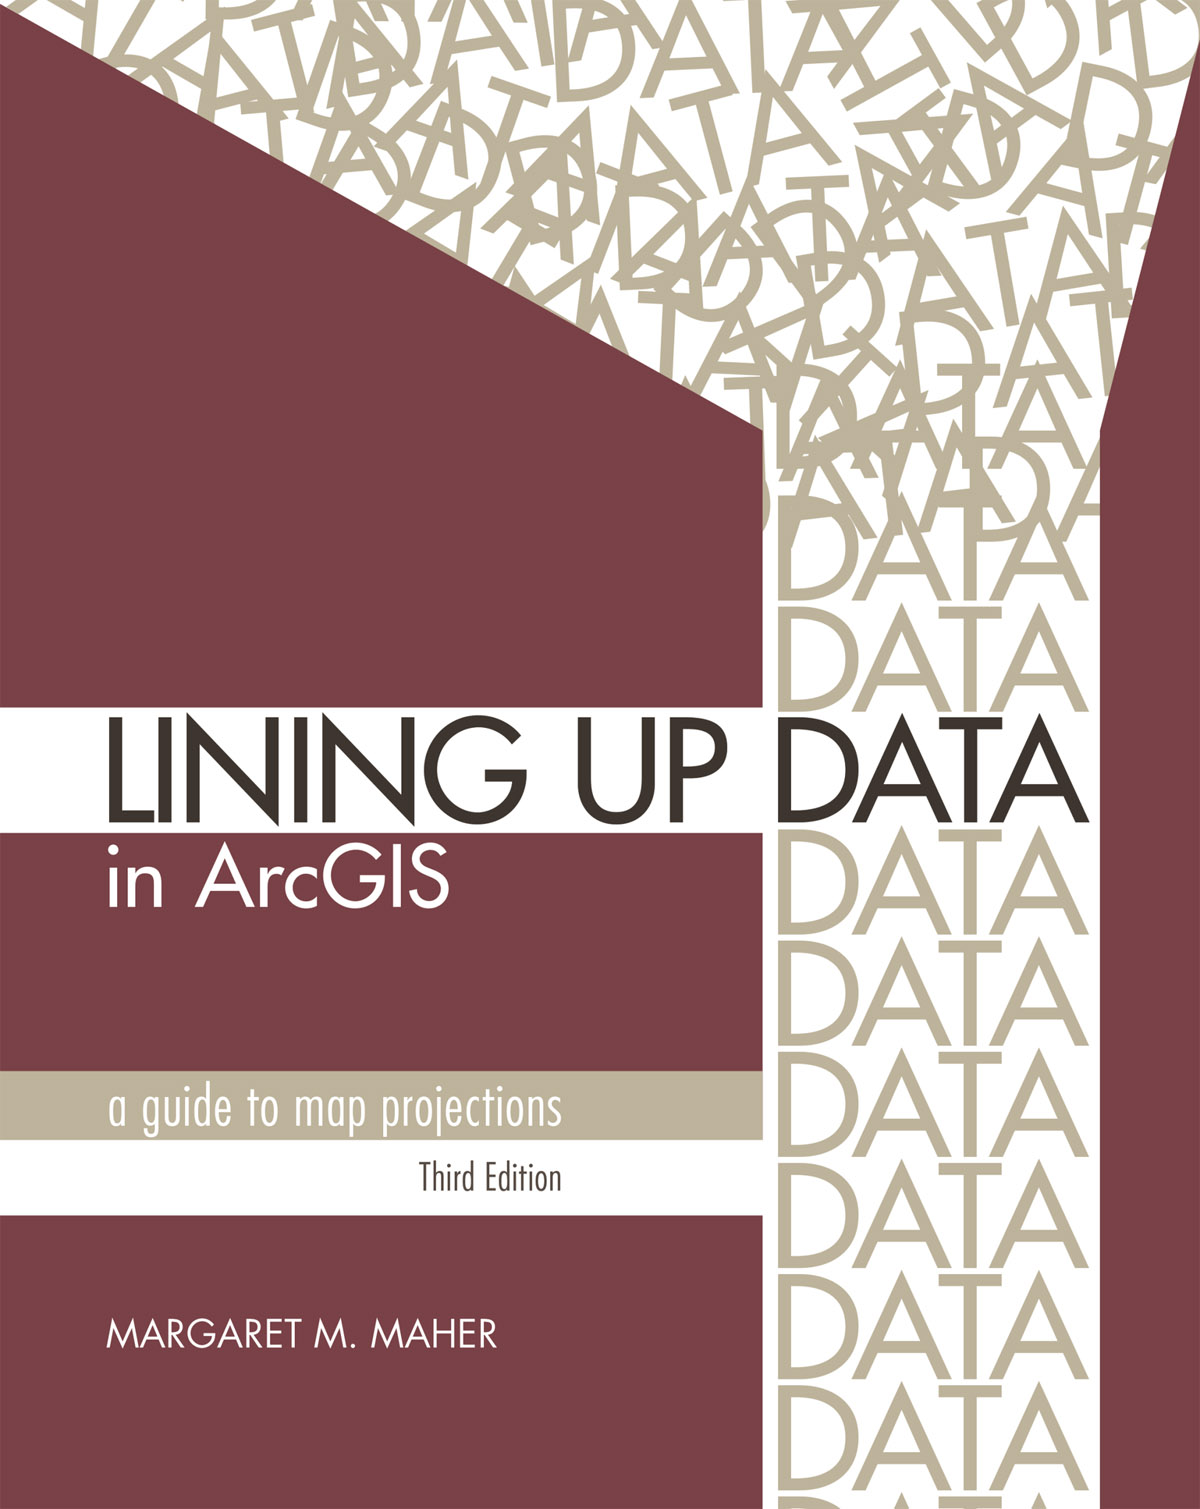 Esri announces the publication of Lining Up Data in ArcGIS: A Guide to Map Projections, Third Edition.